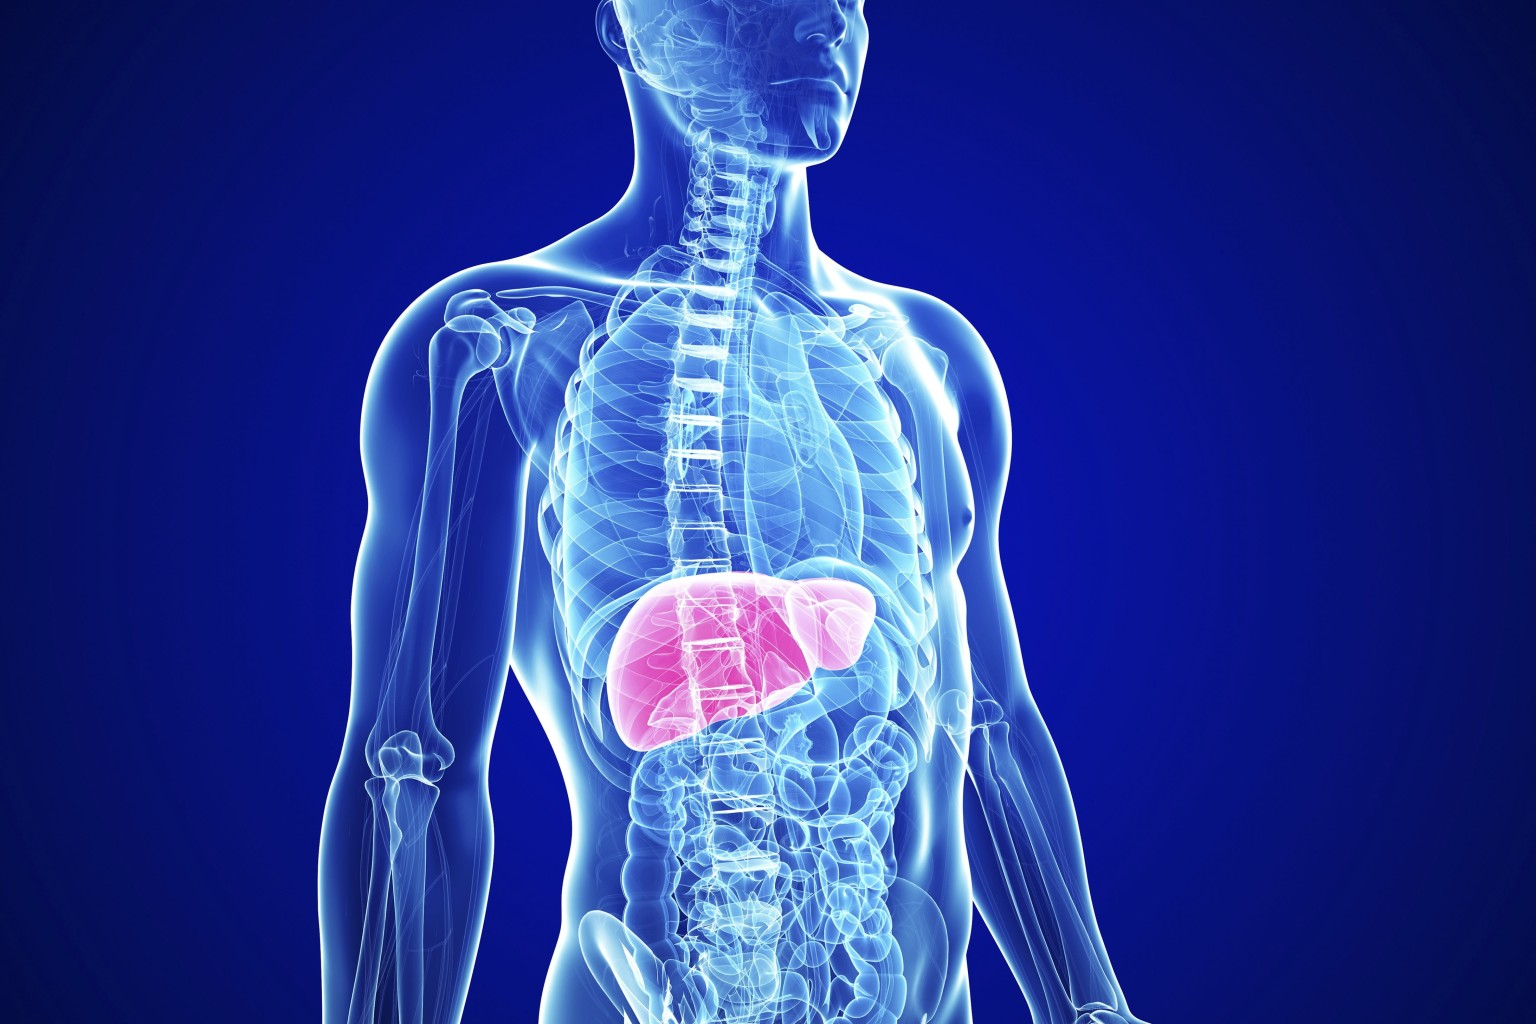 Scientists have identified genes that direct stem cells to form liver cells.